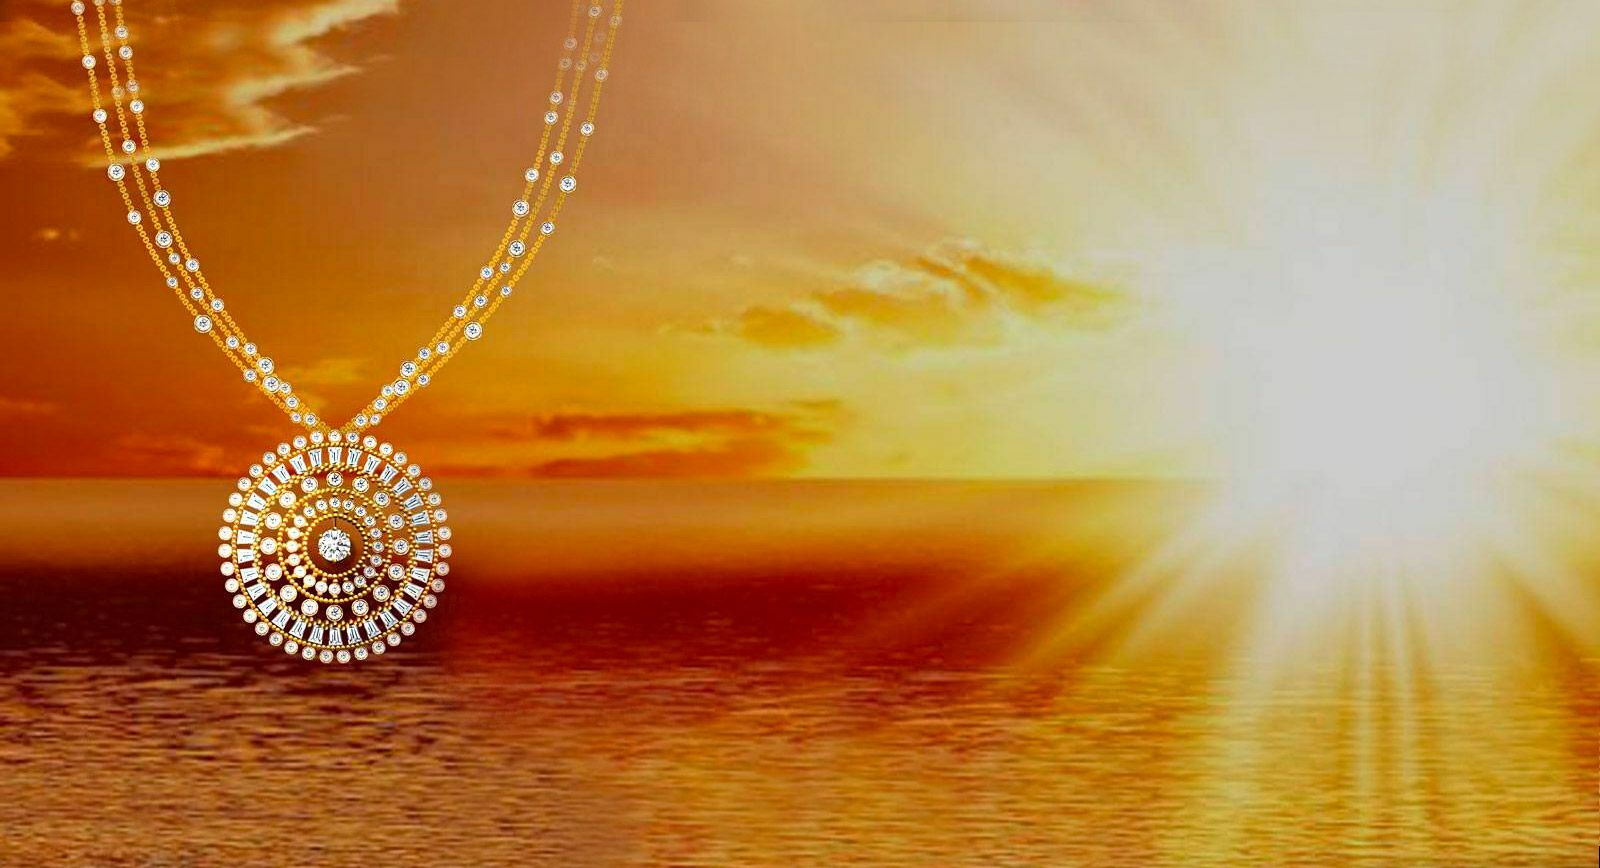 Luxury by Harakh: One of a kind necklace, 'The Sunlight' sold at Sotheby's auction